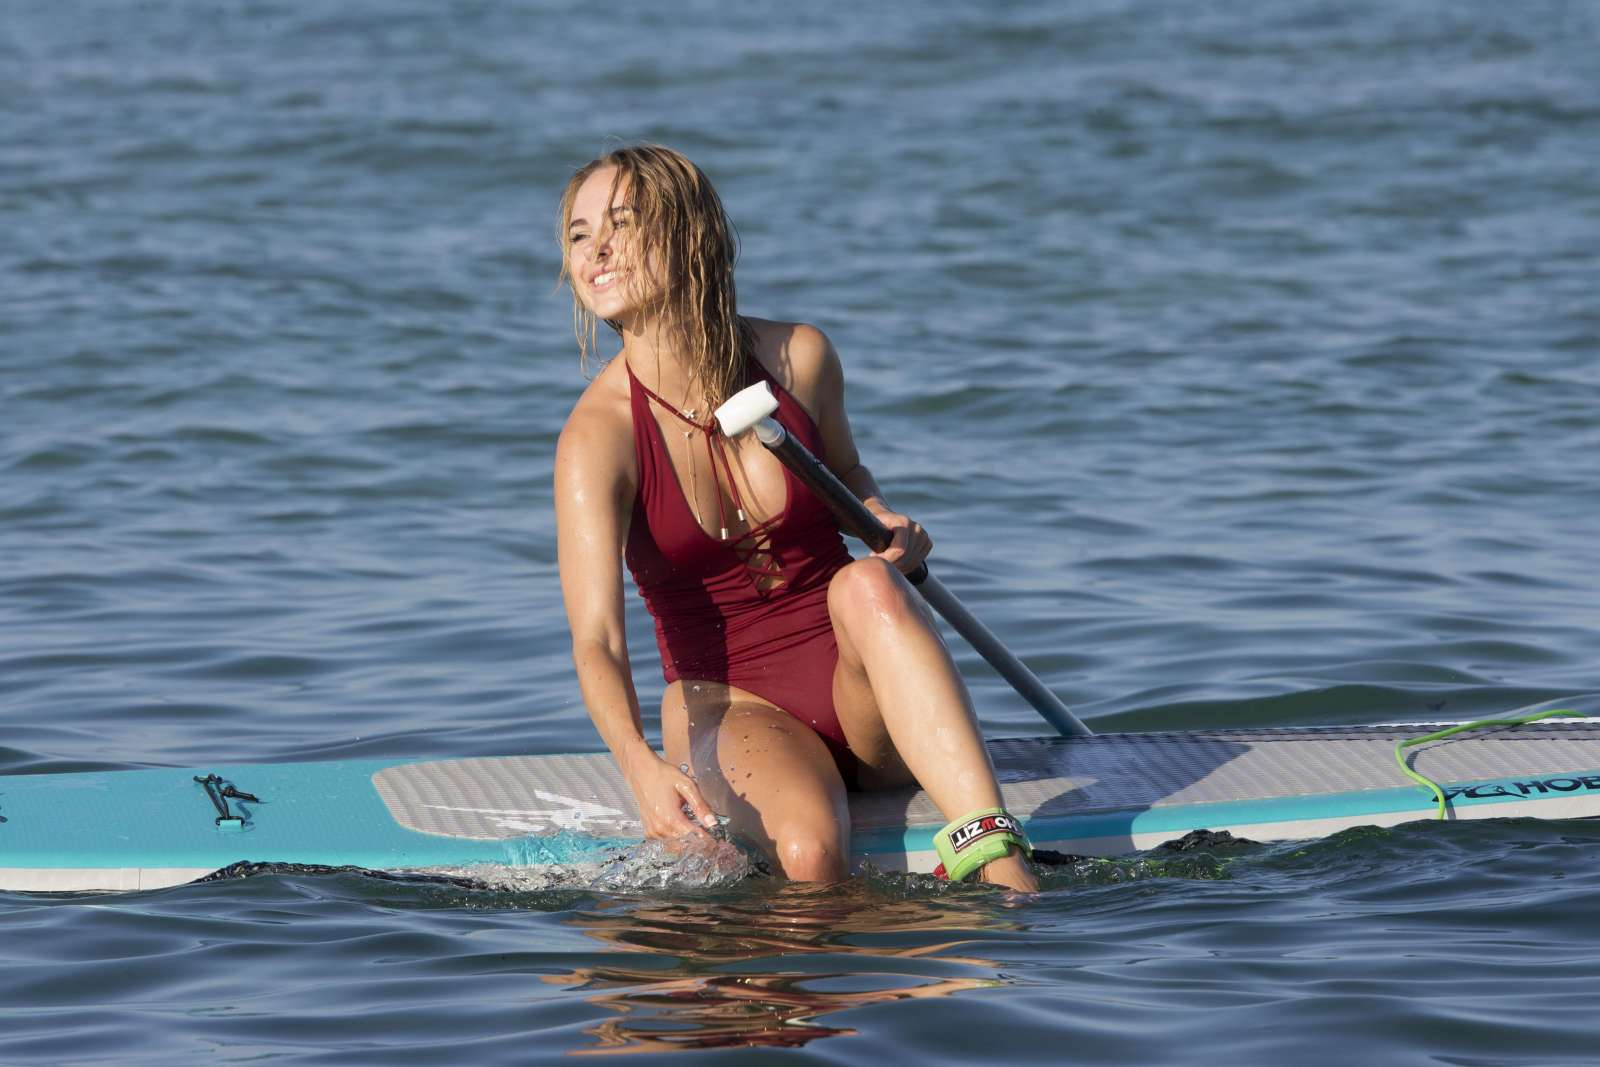 Kimberley Garner in Red Bikini Paddleboarding in Caribbean Pic 5 of 35